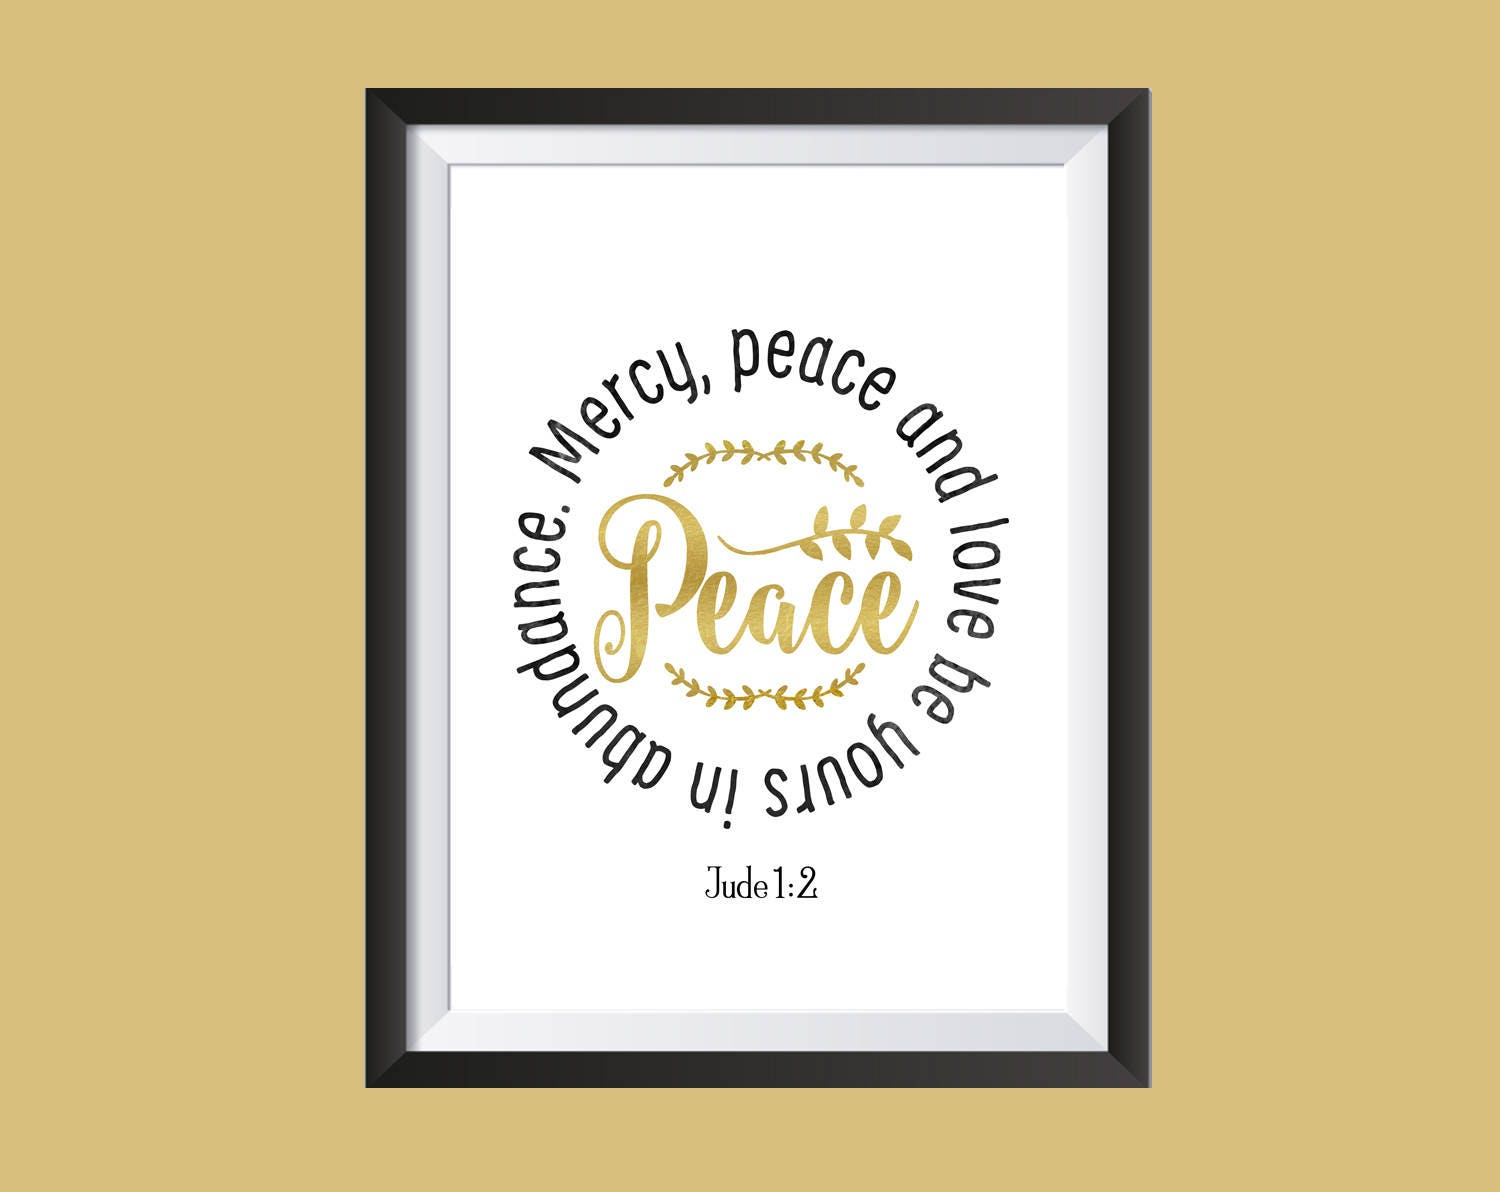 Jude 1:2 Instant Download Wall Art Printable Peace Bible